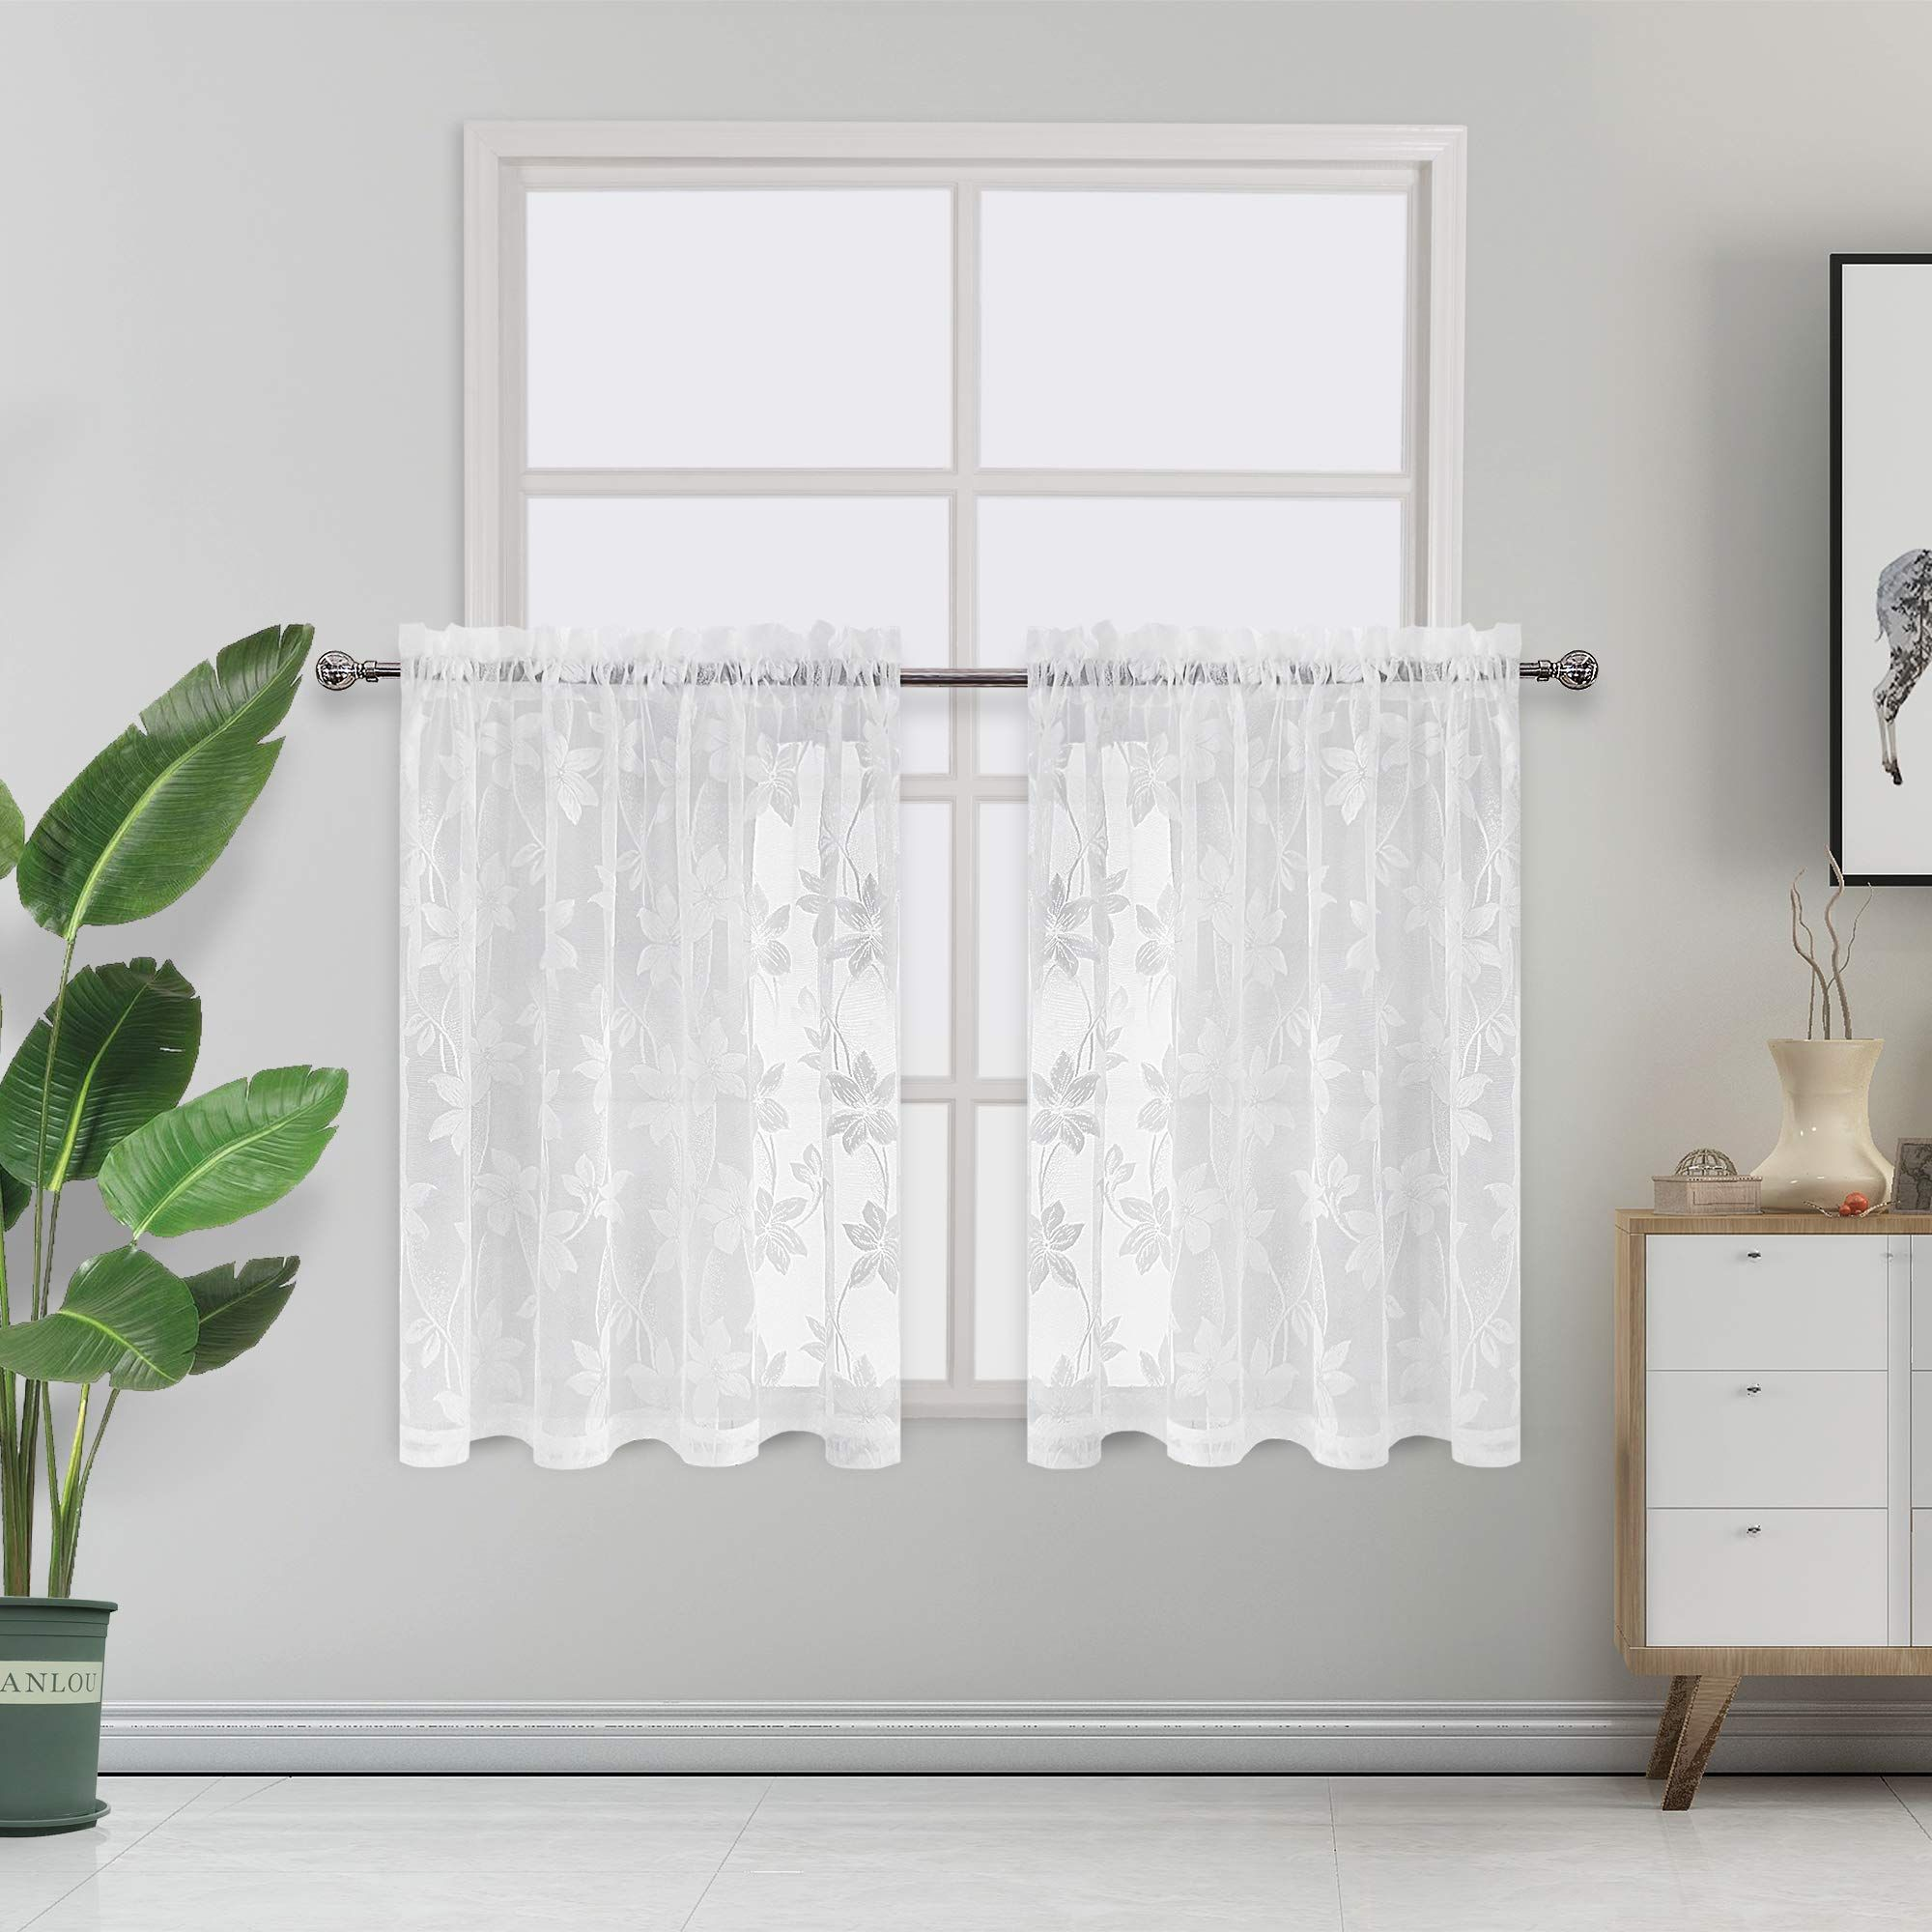 Dwcn Floral Lace Sheer Tier Curtains Rod Pocket Window Voile